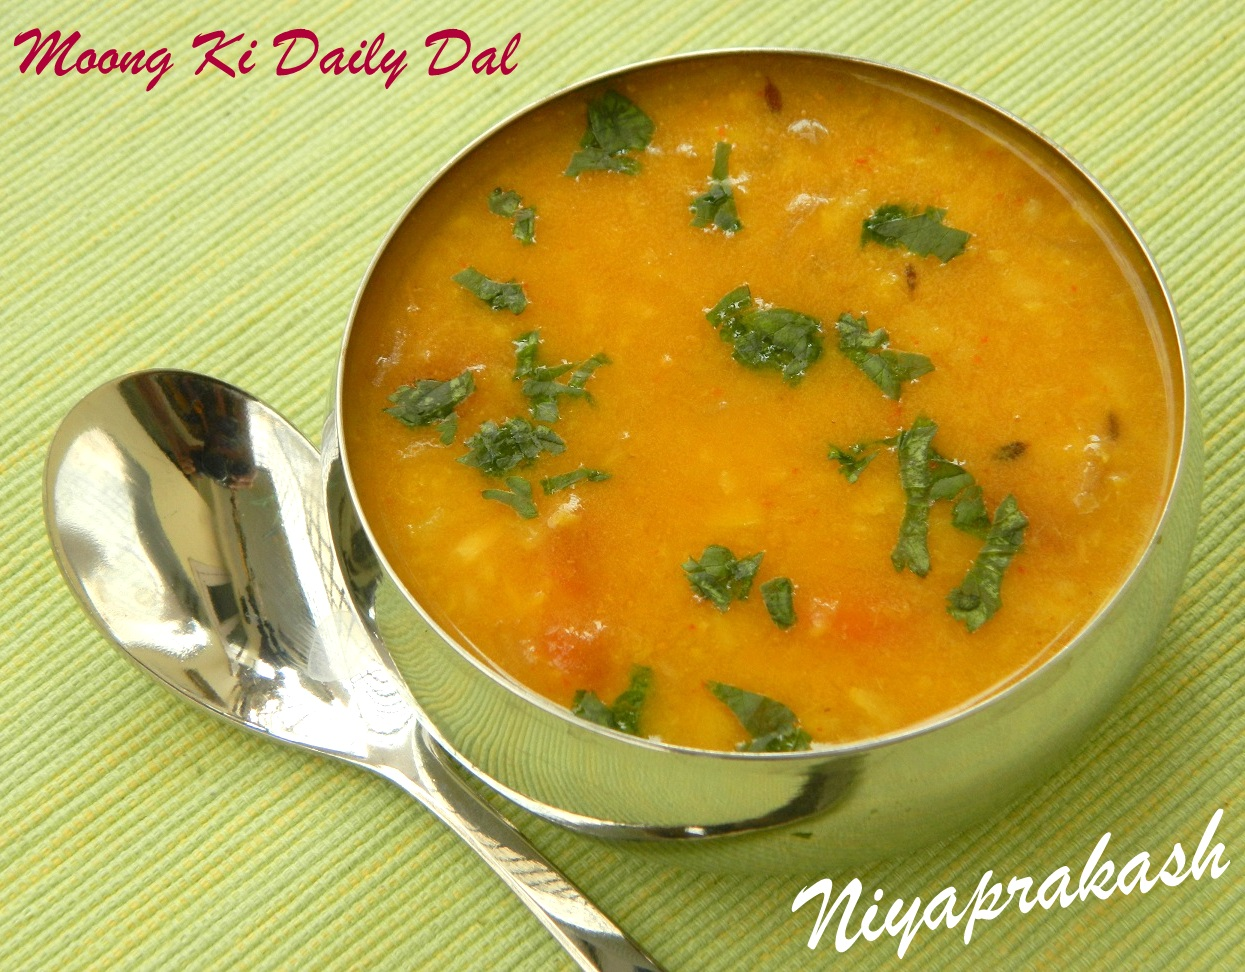 Niyas world moong ki daily dal recipe from sanjeev kapoor moong ki daily dal recipe from sanjeev kapoor forumfinder